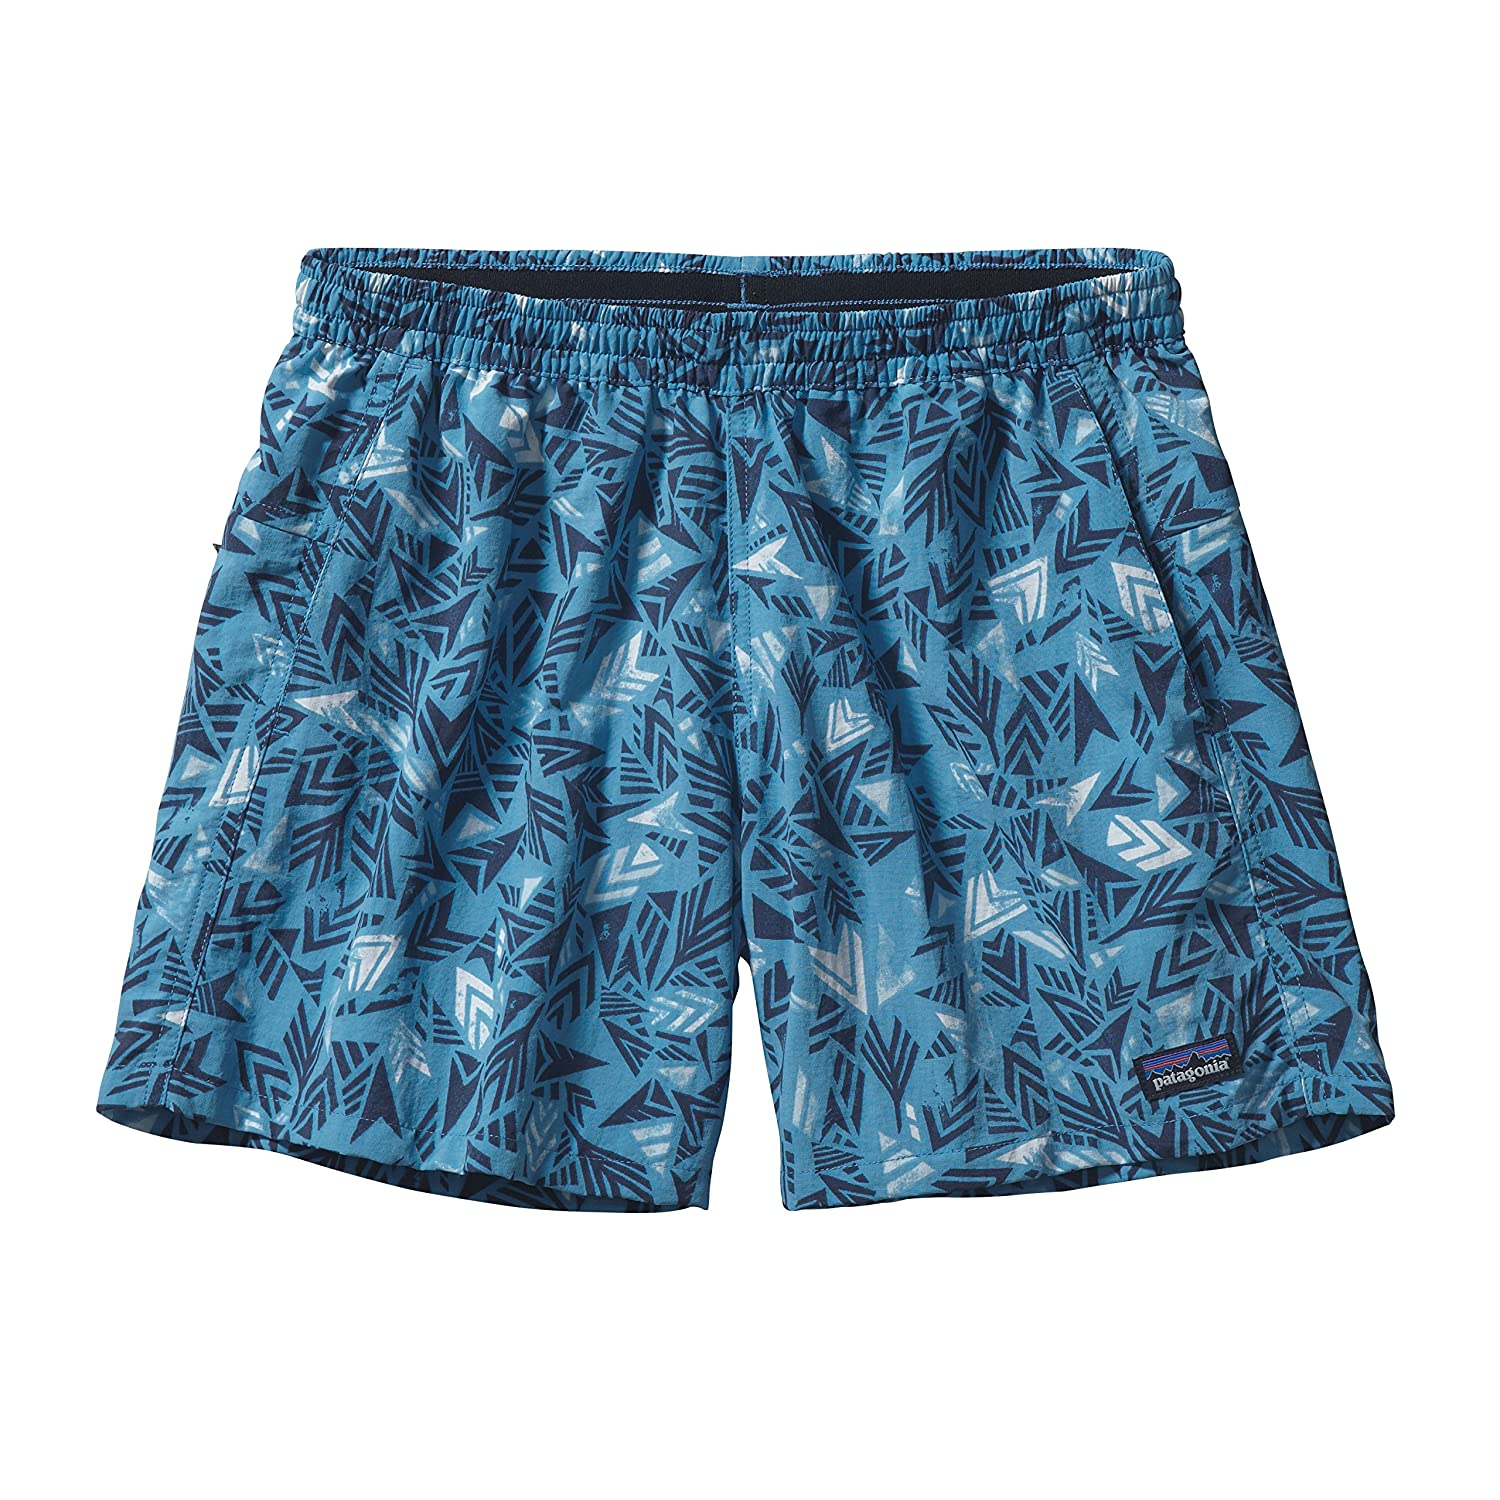 パタゴニア WOMEN BAGGIES™SHORTS - 5